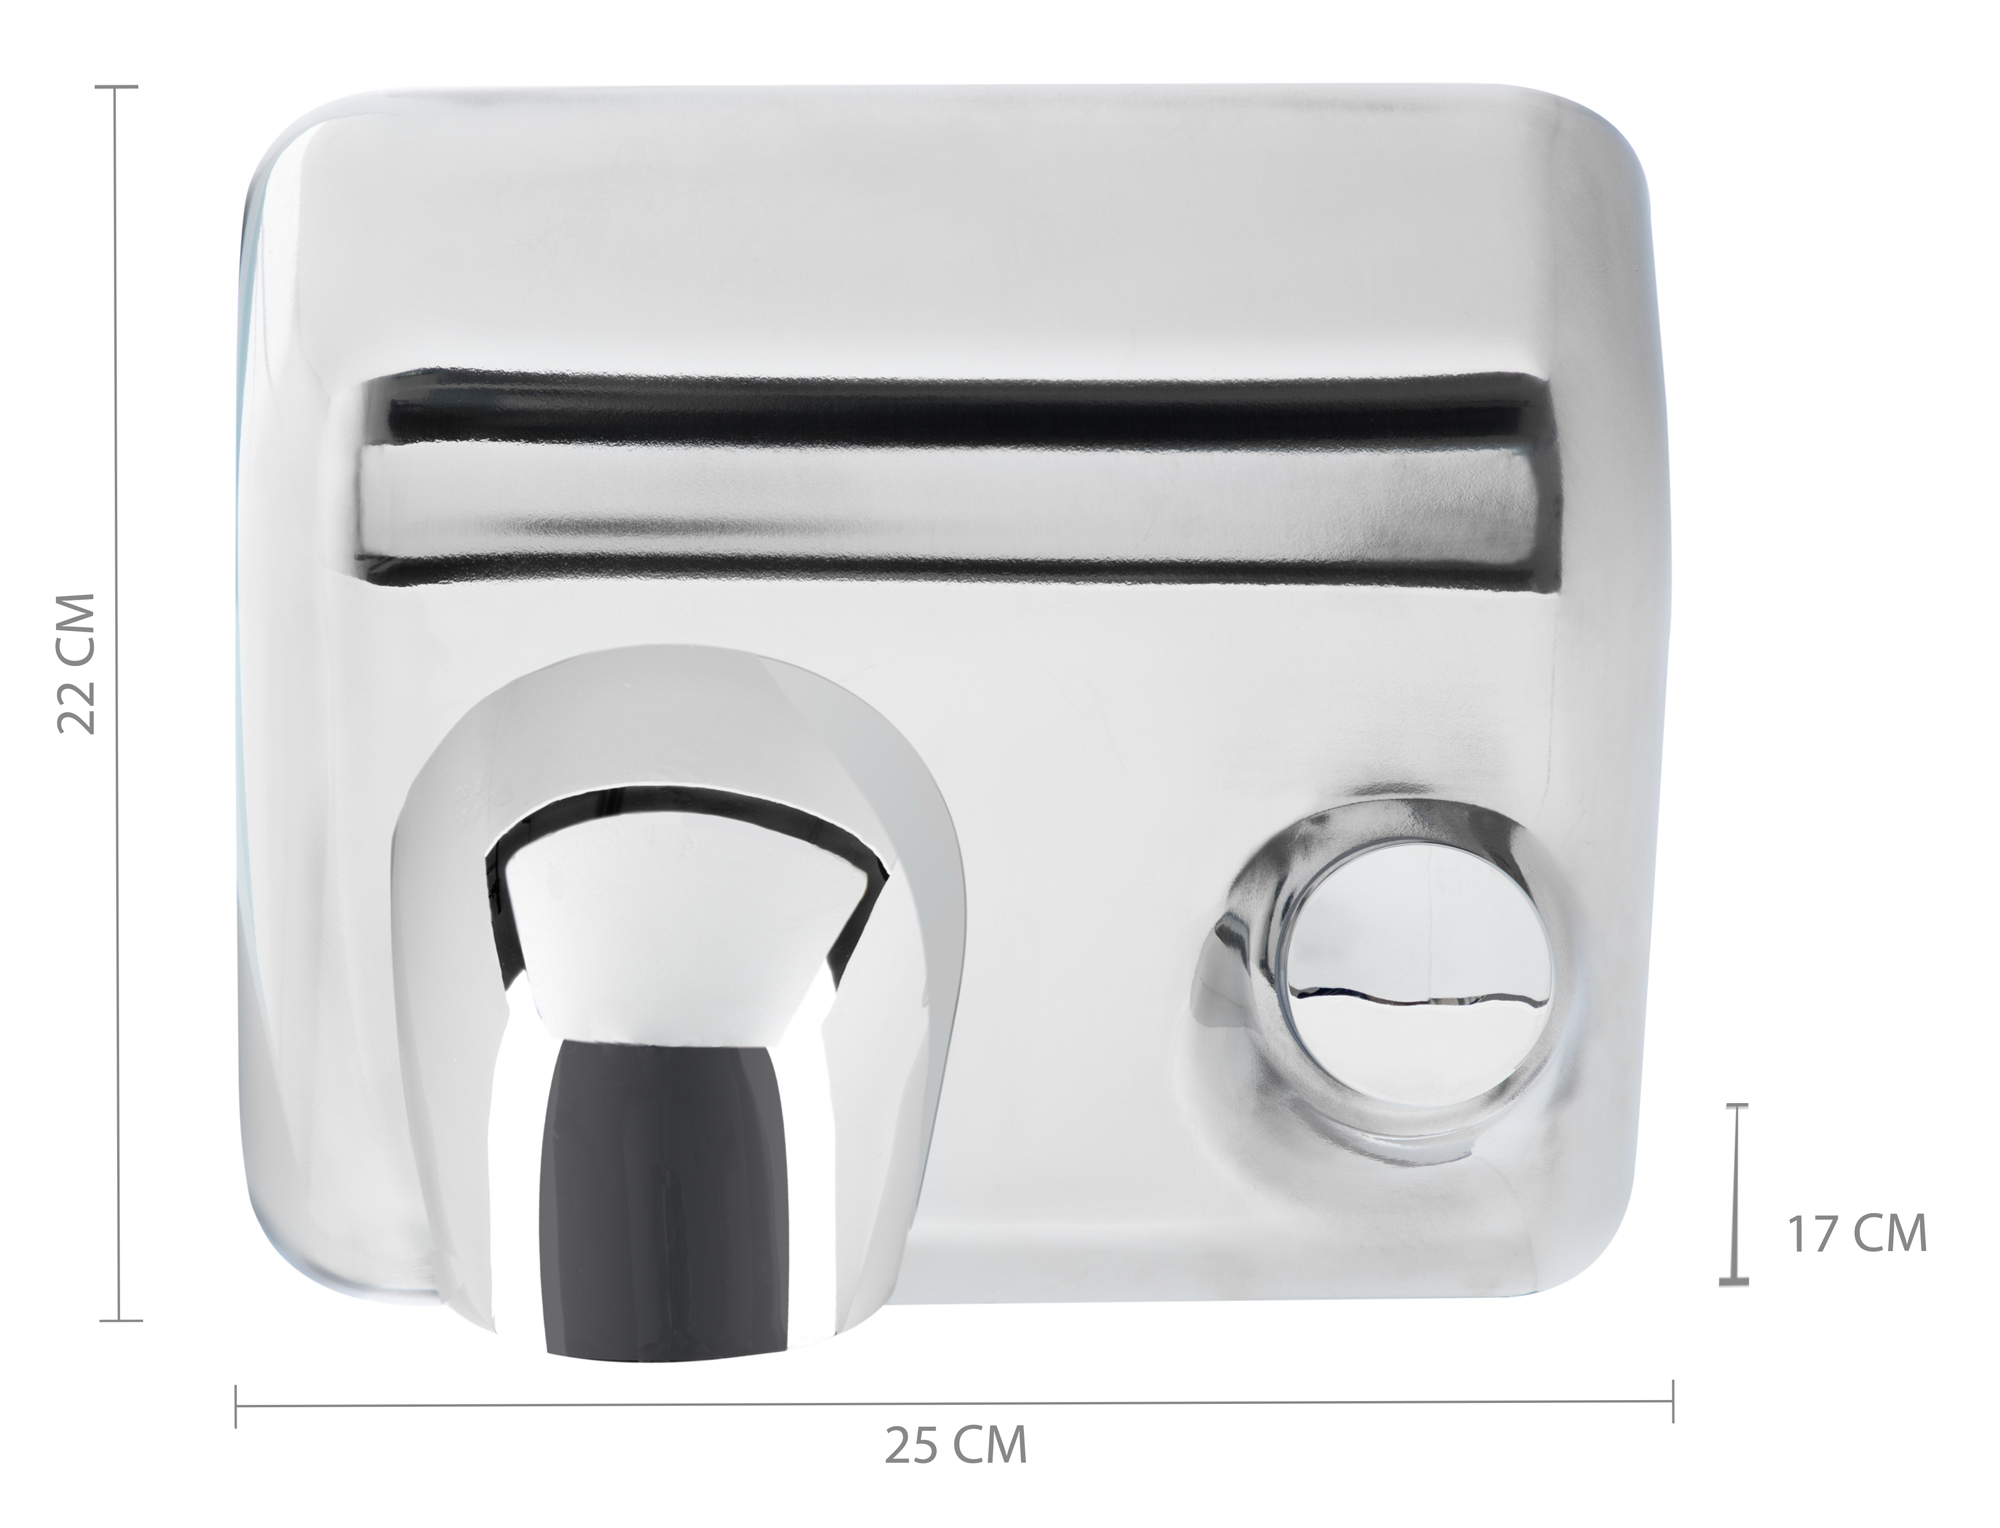 Händetrockner World Dryer Stagecaptain Dryboy Hand Dryer